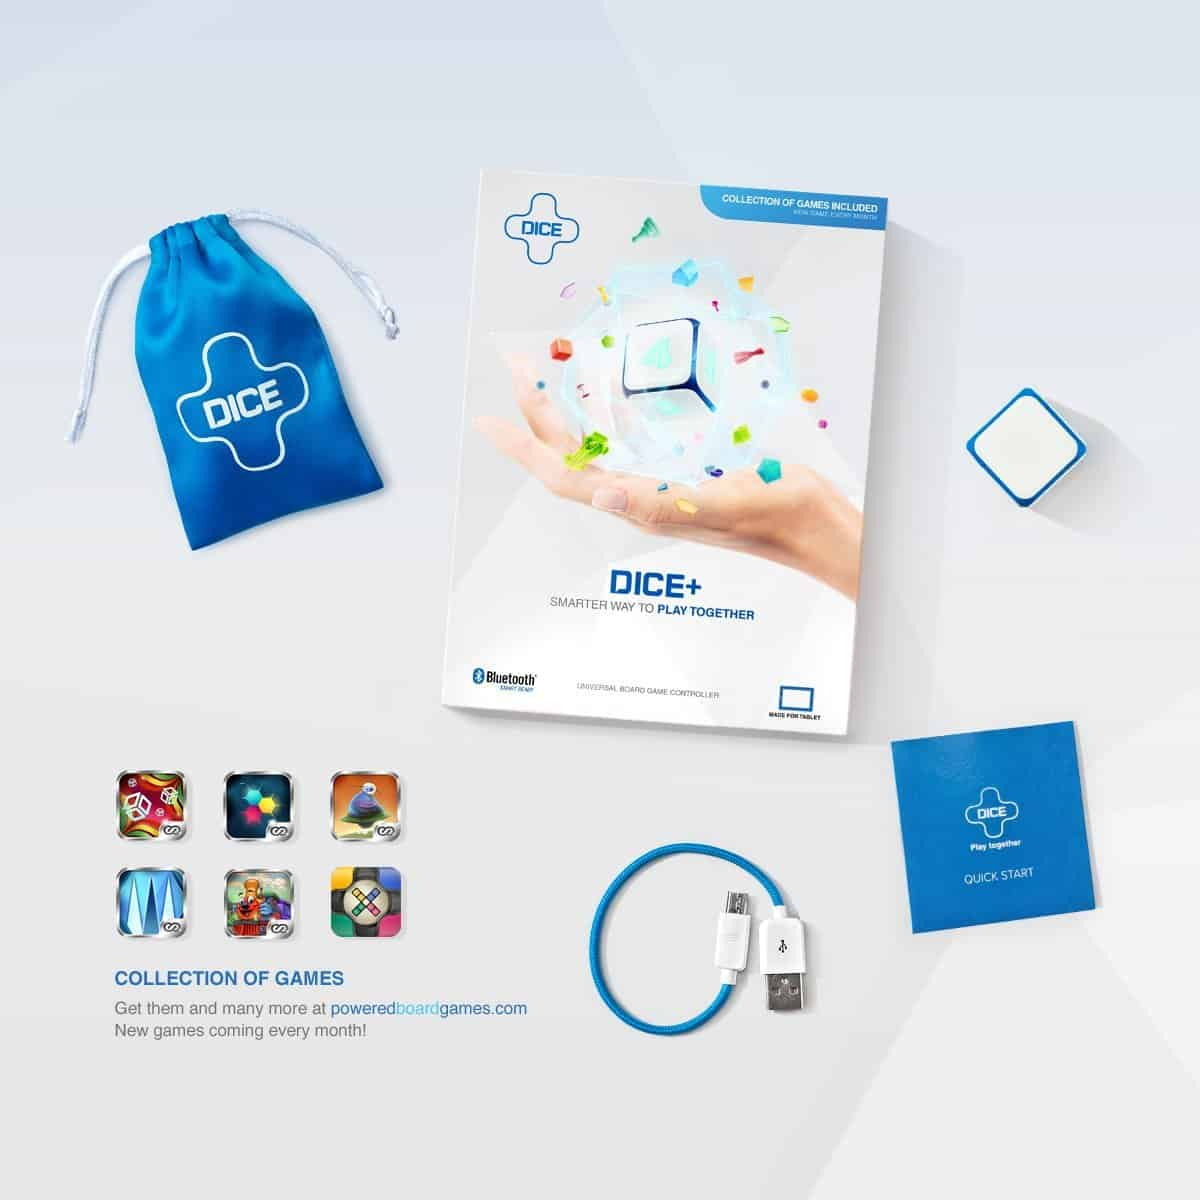 DICE+ Bluetooth Gaming Dice Inside the Box